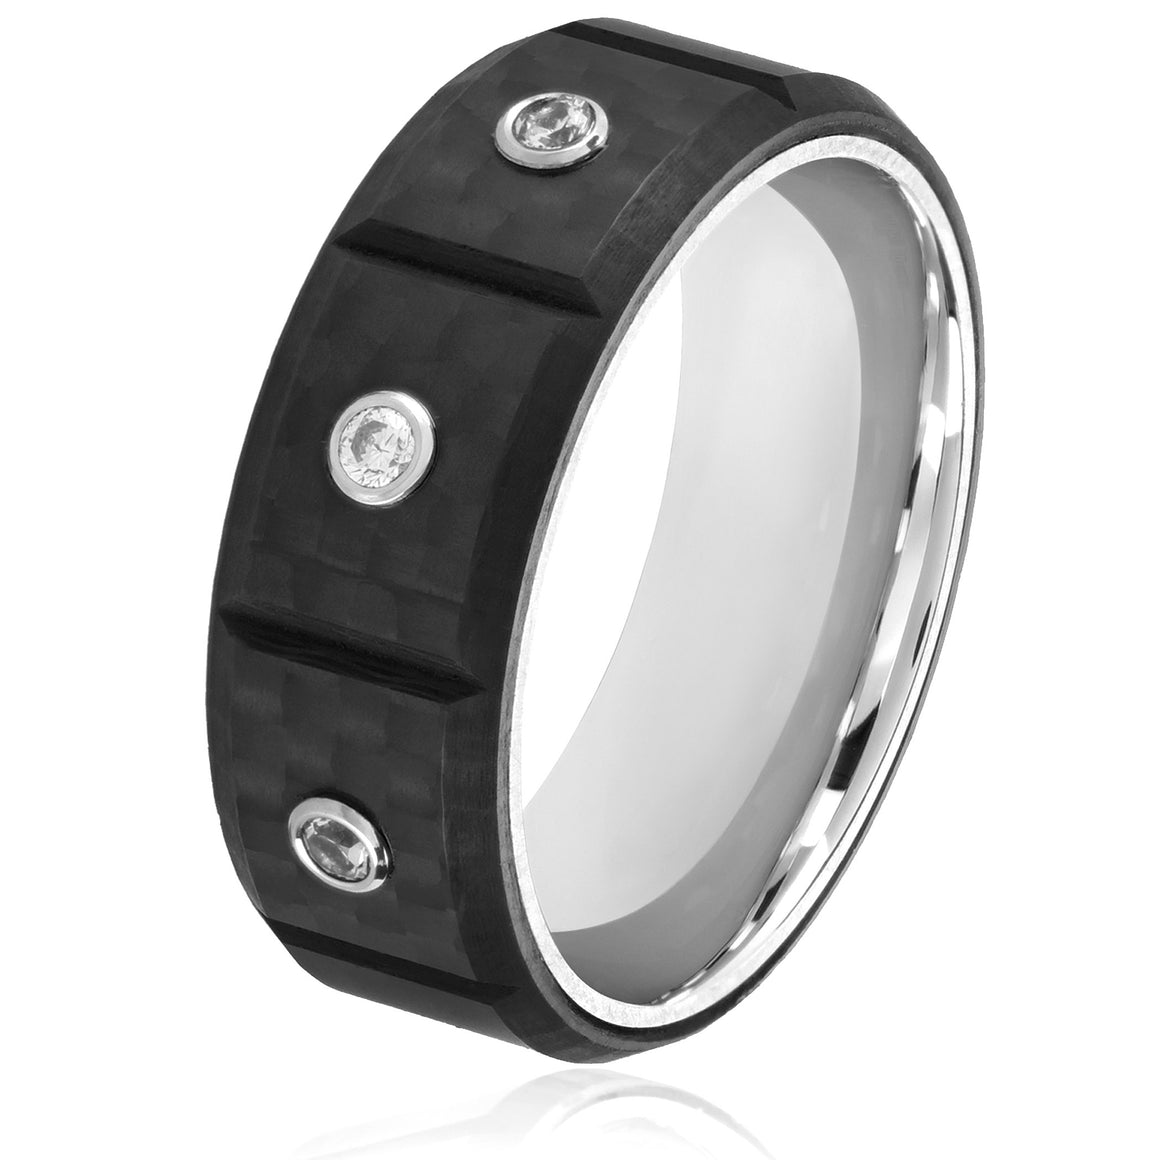 Crucible Stainless Steel Carbon Fiber Triple Cubic Zirconia Comfort Fit Ring